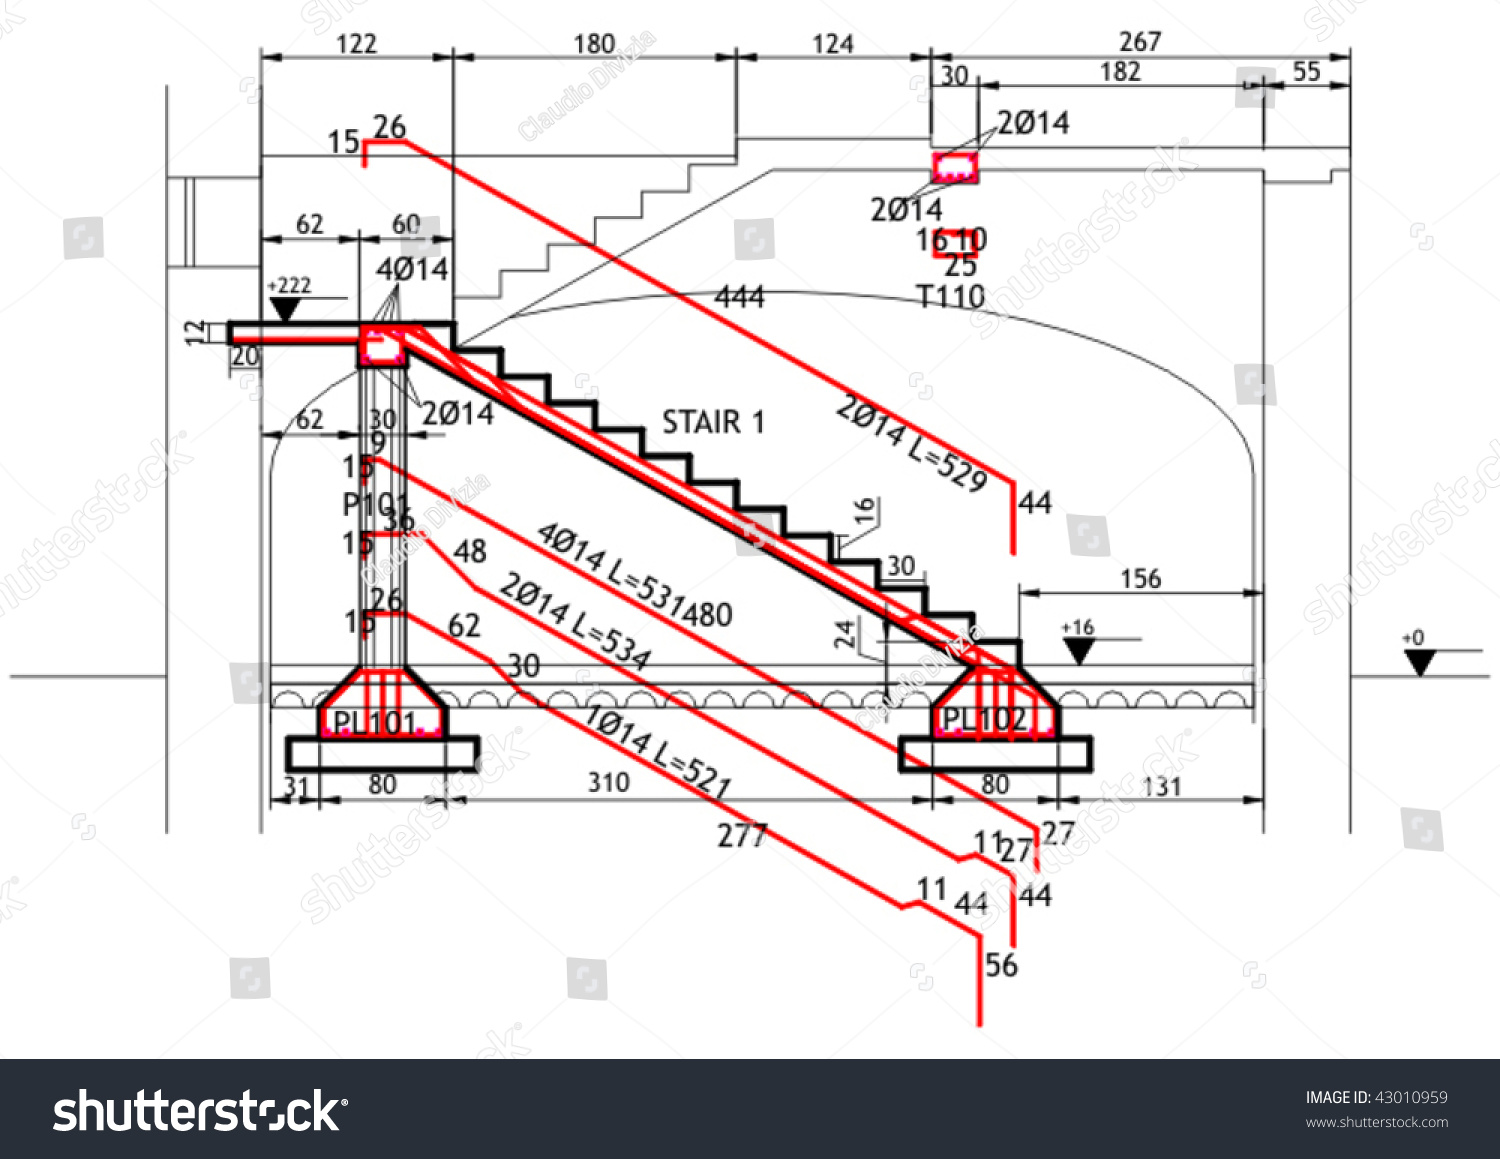 Structural Drawing For A Reinforced Concrete Structure Stair